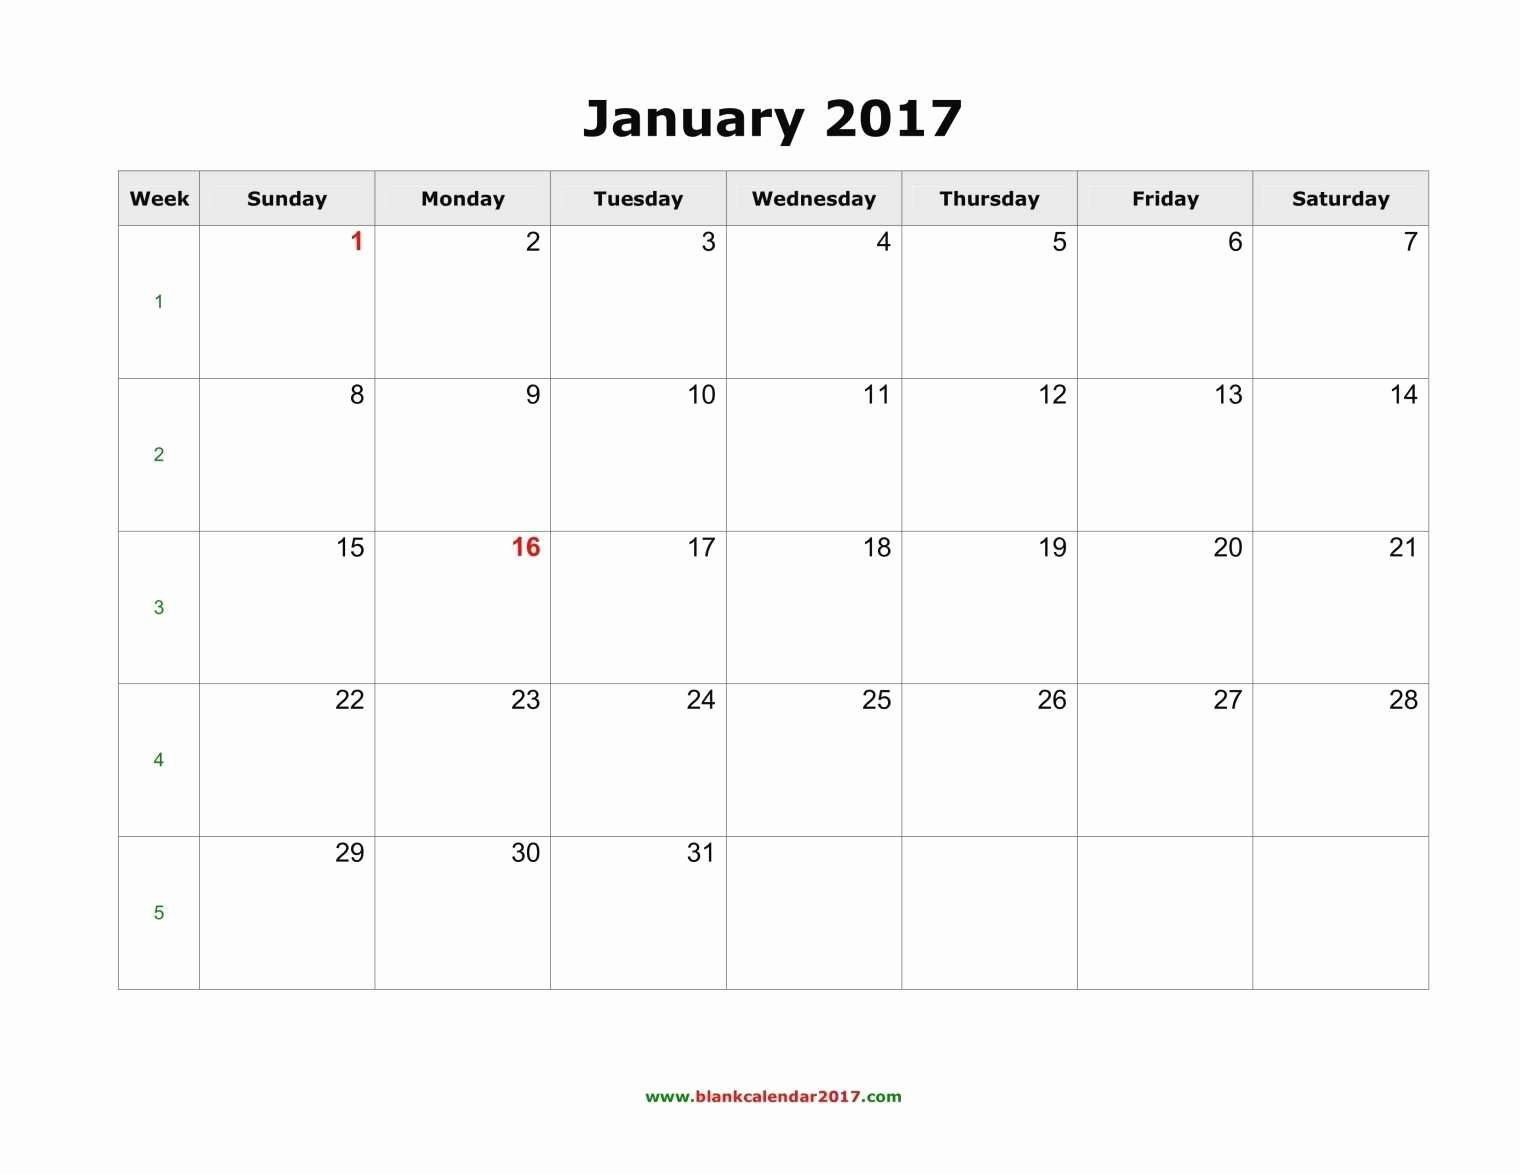 Marketing Calendar Template 2017 Beautiful Unique Best Marketing Calendar Template 2017